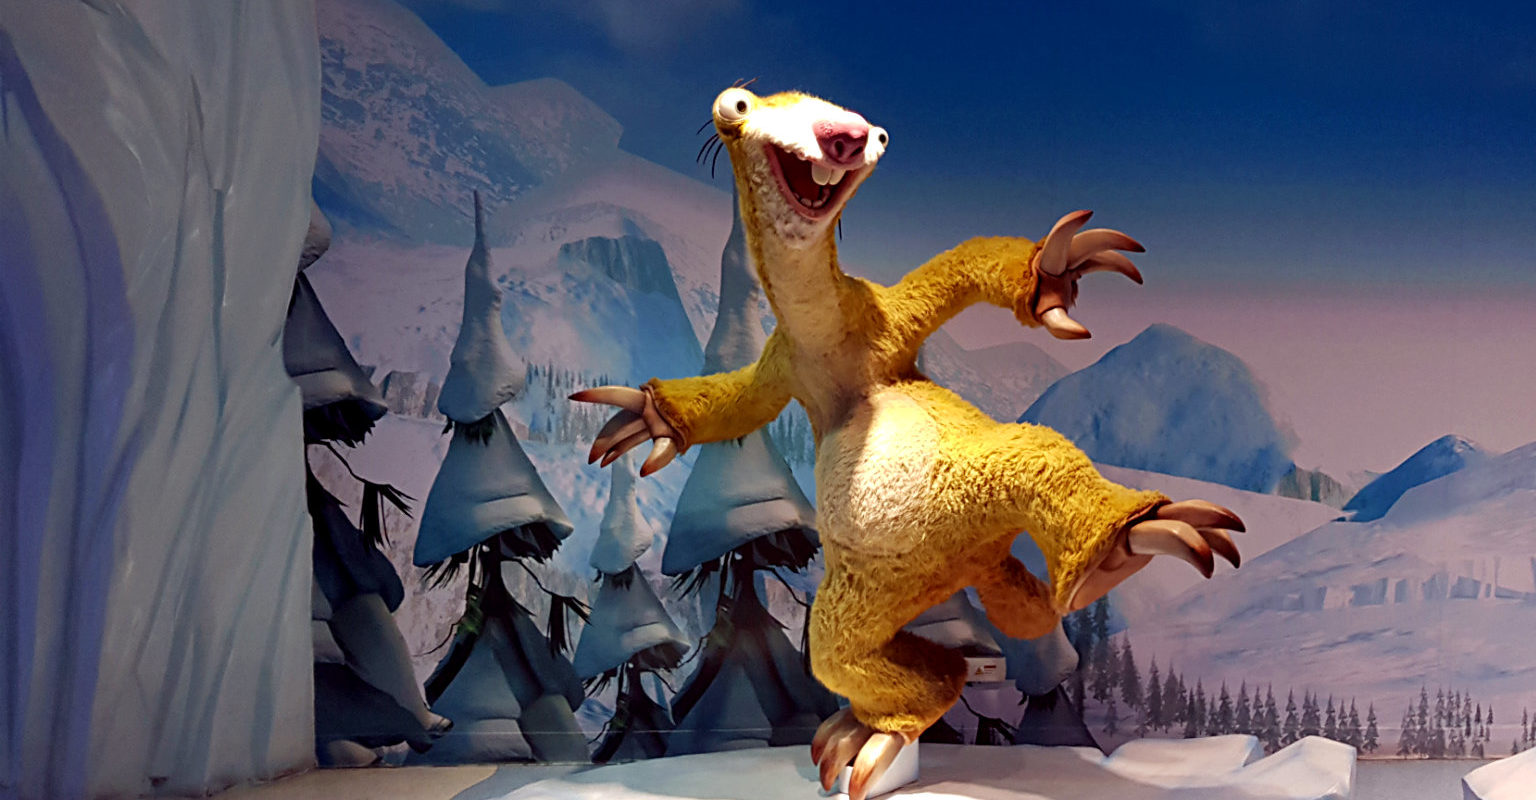 Ice Age $D film Madame Tussauds